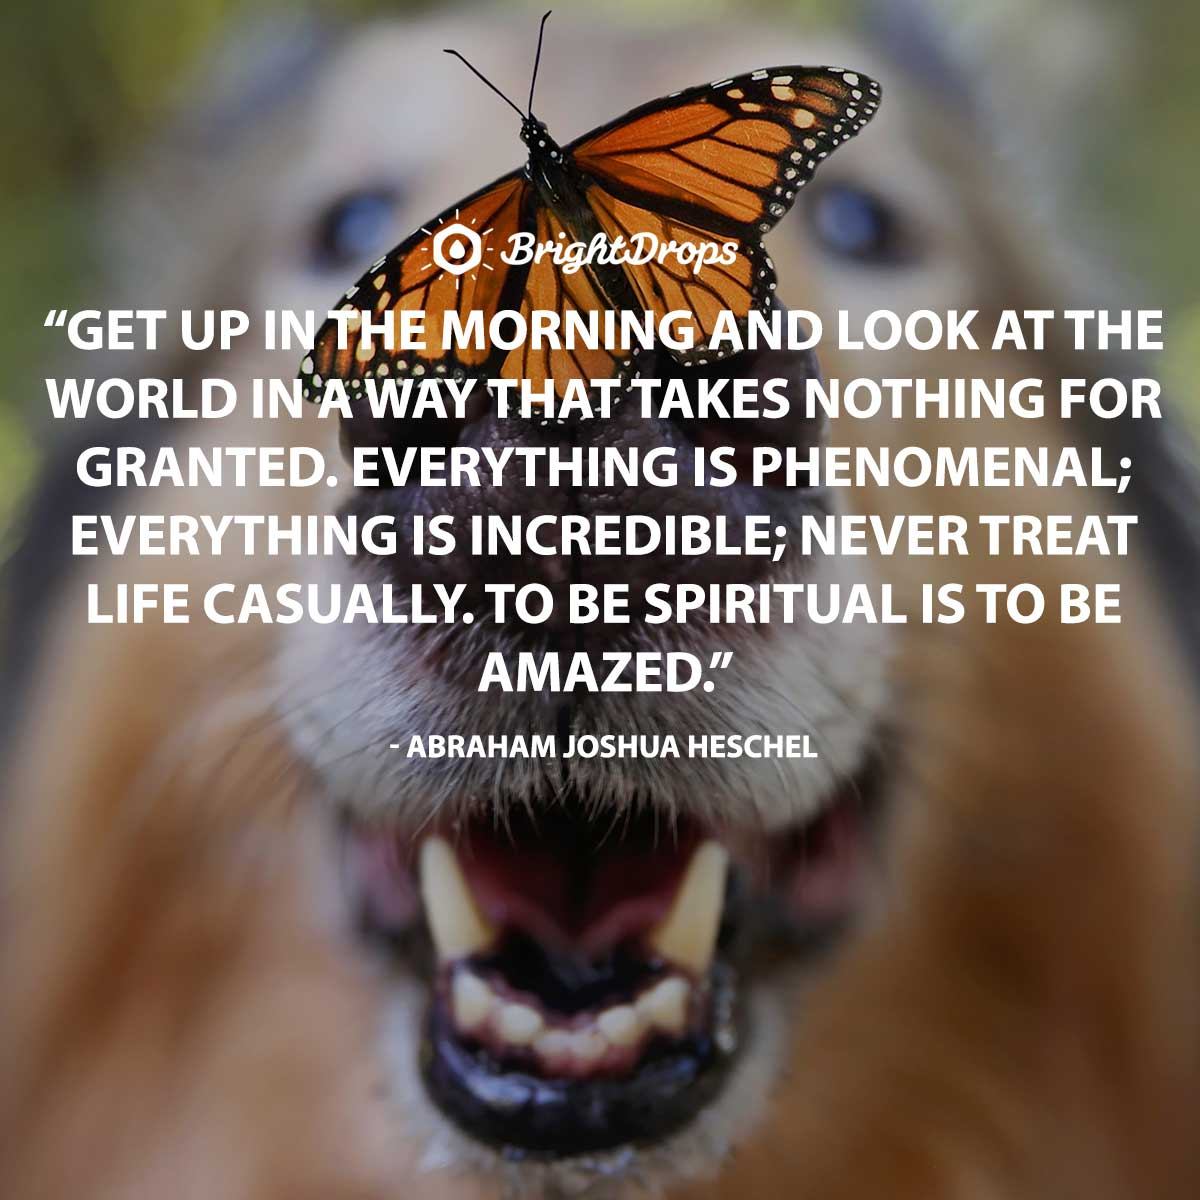 Get up in the morning and look at the world in a way that takes nothing for granted. Everything is phenomenal; everything is incredible; never treat life casually. To be spiritual is to be amazed. - Abraham Joshua Heschel